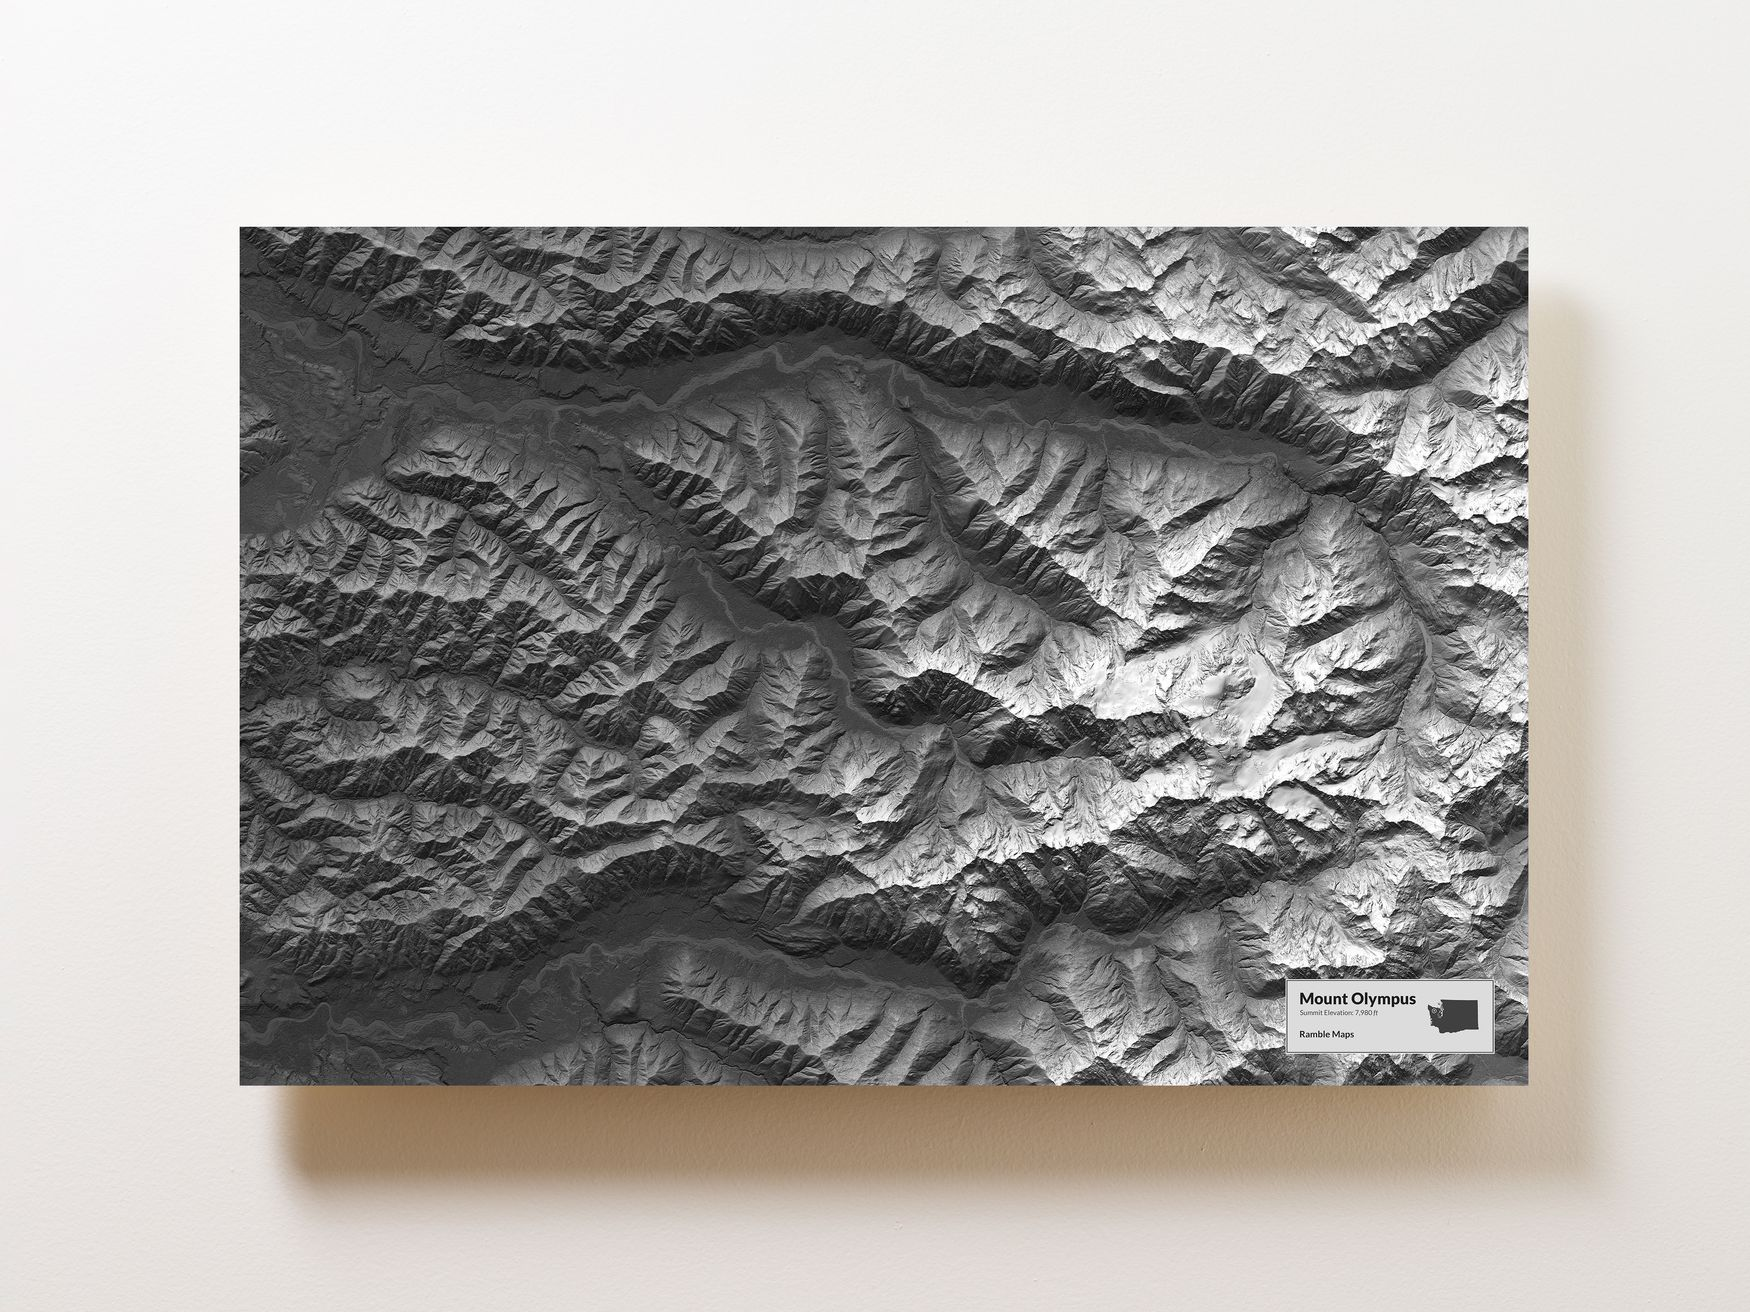 Mount Olympus Wall Map